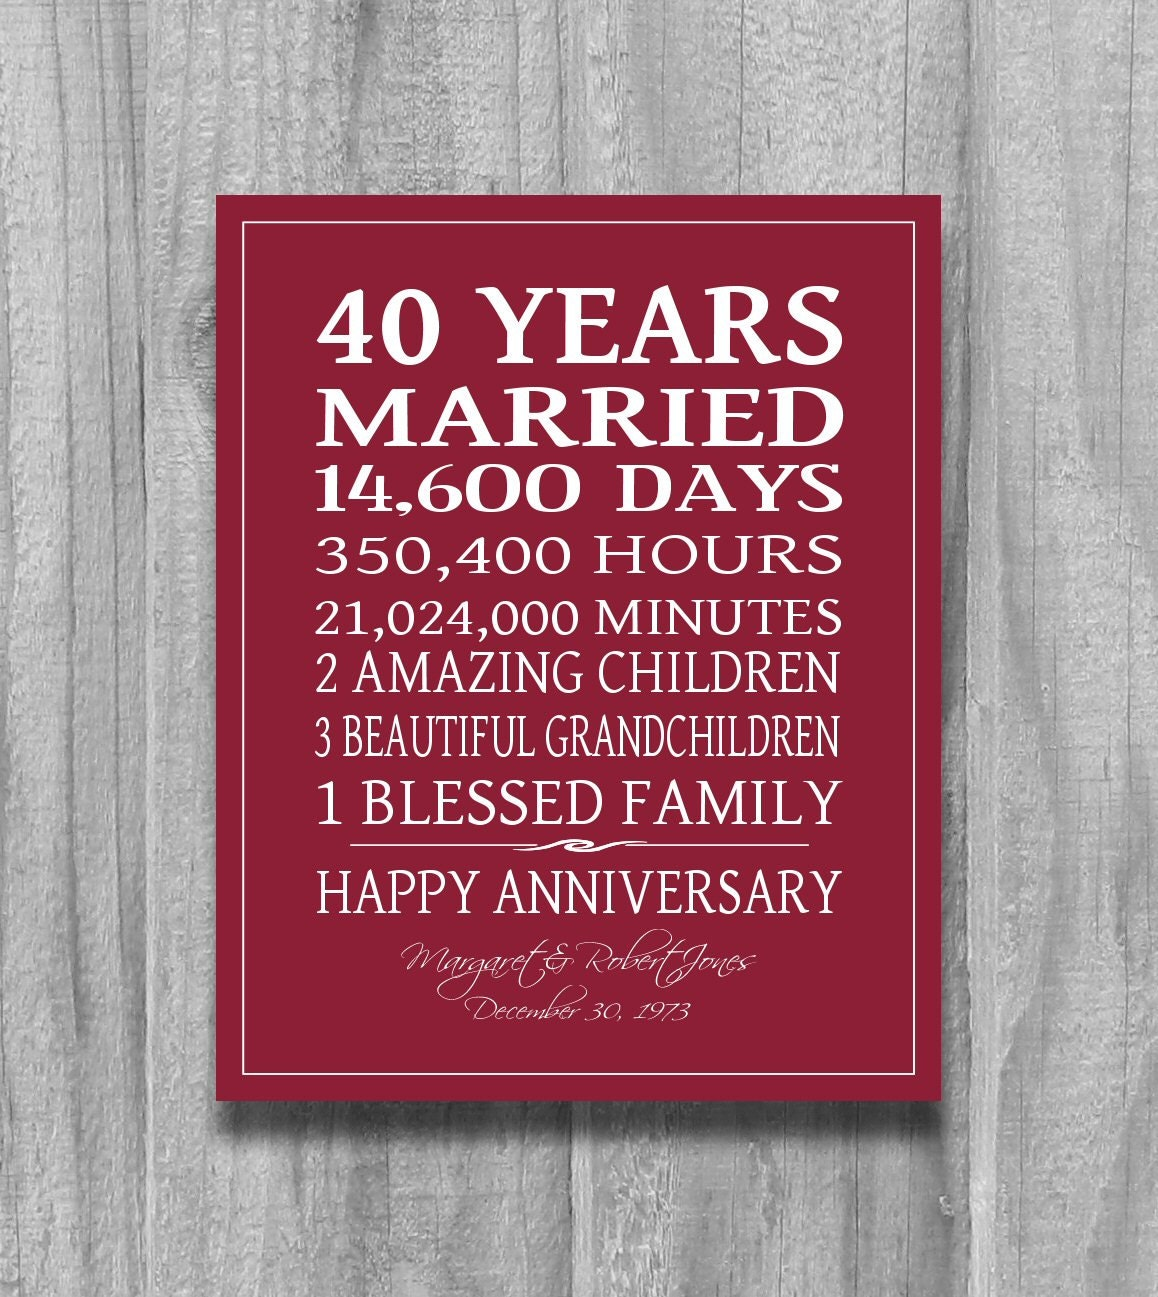 40th Wedding Anniversary Gift Ideas For Parents Australia : RUBY 4Oth Anniversary Gift Personalized by PrintsbyChristine